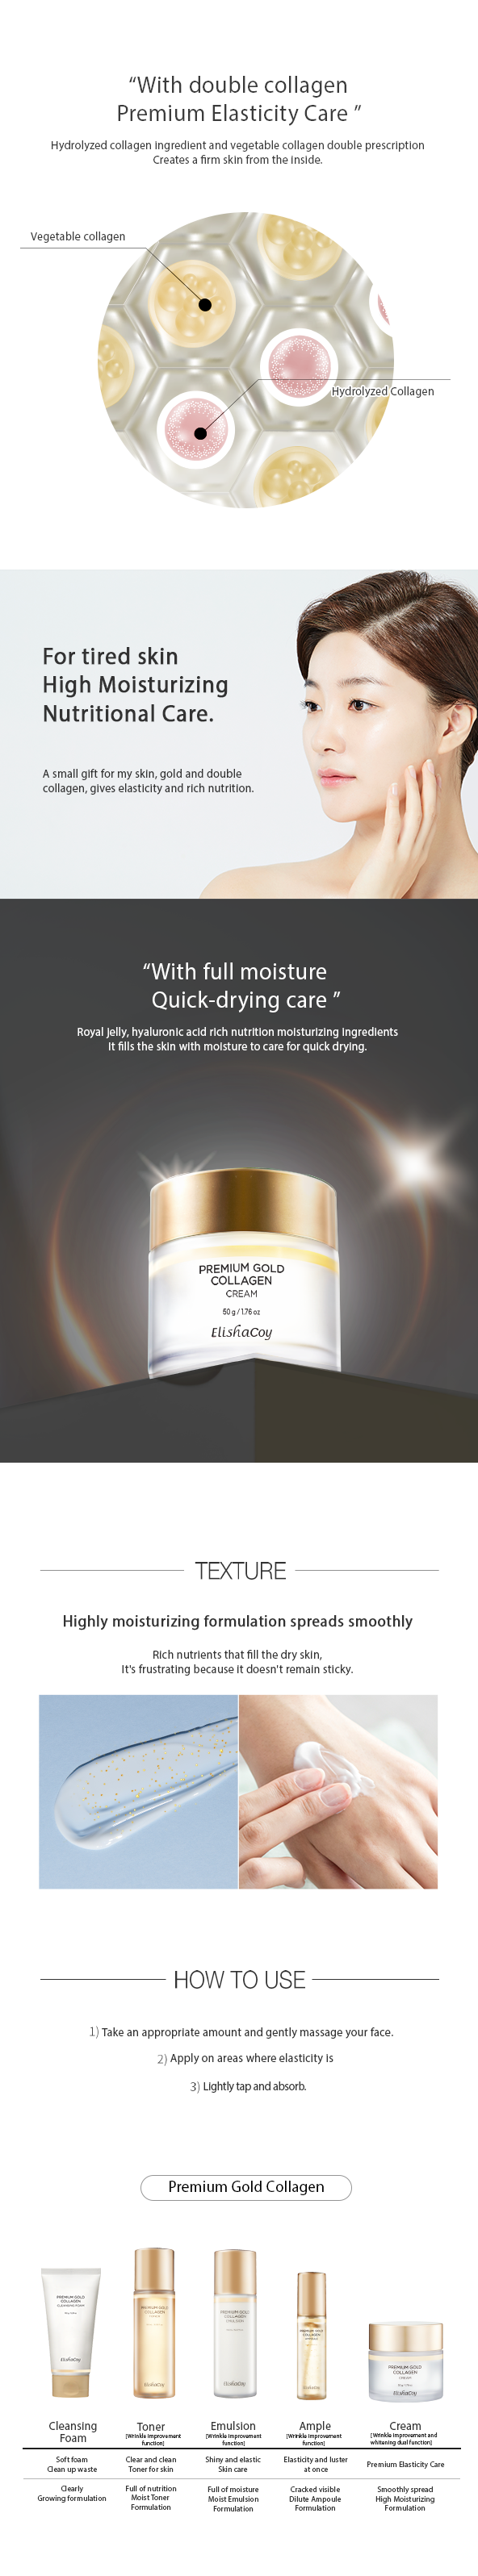 Premium Gold Collagen Cream